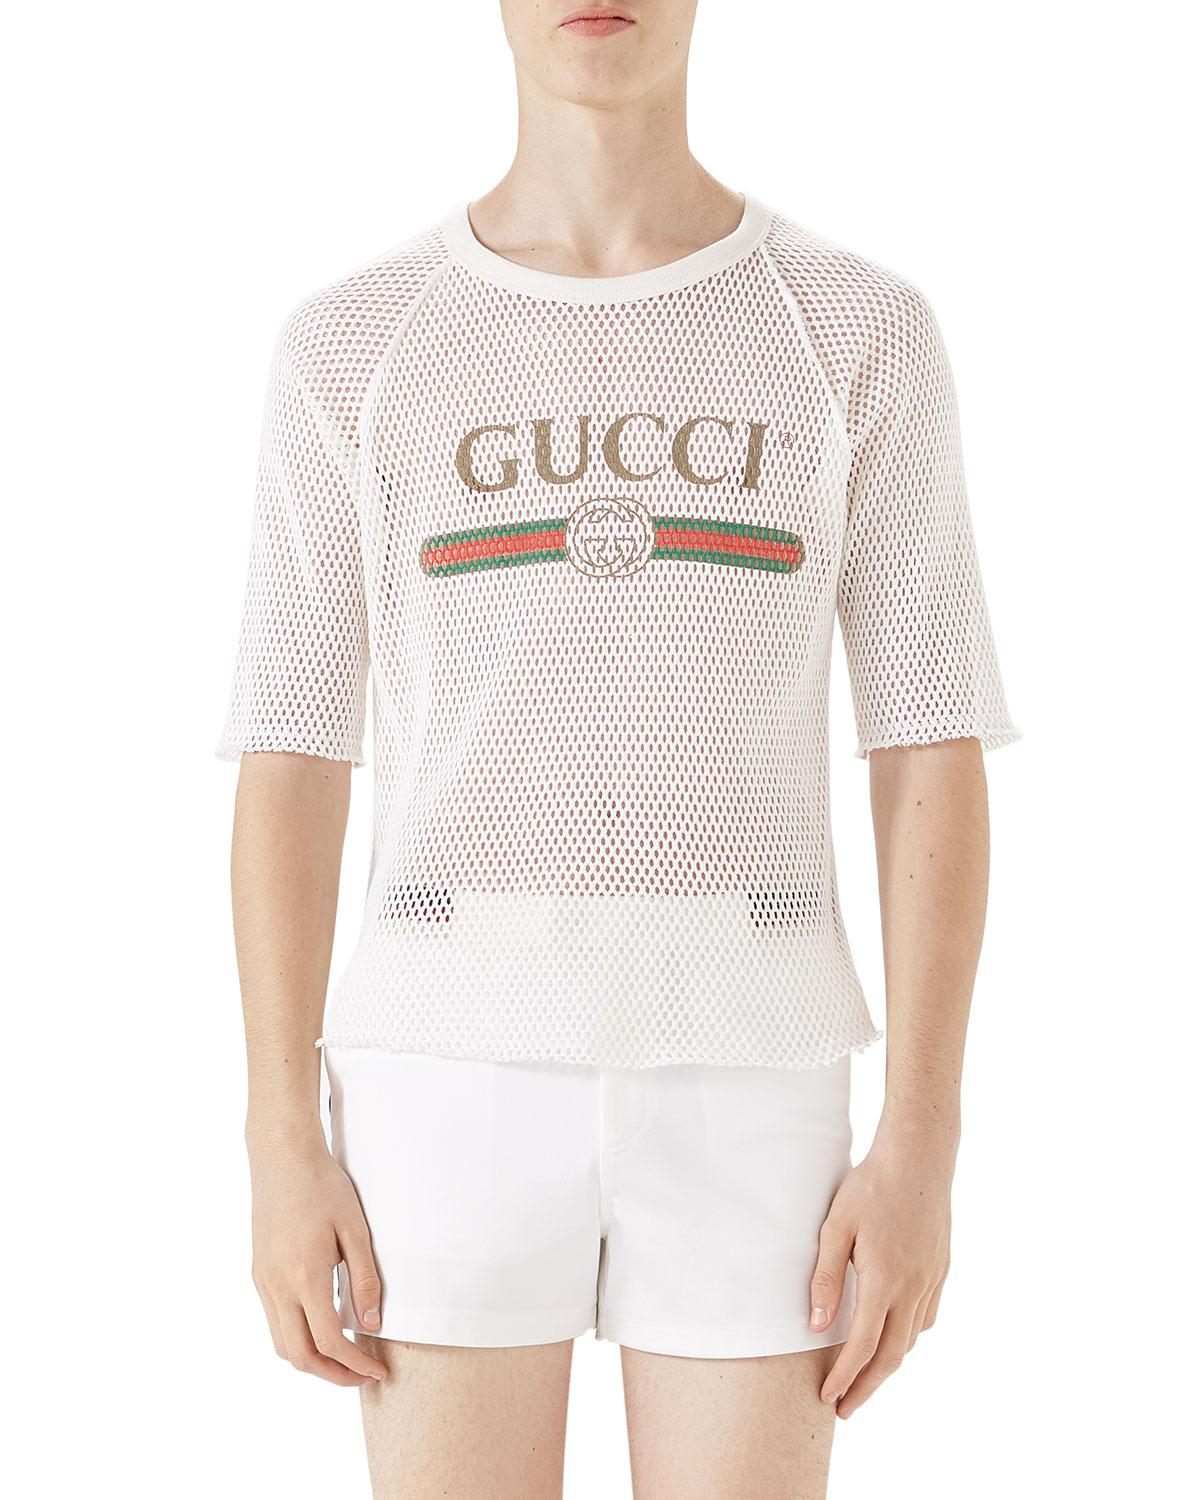 5c904b86 Gucci Logo-graphic Cotton Mesh T-shirt in White for Men - Lyst